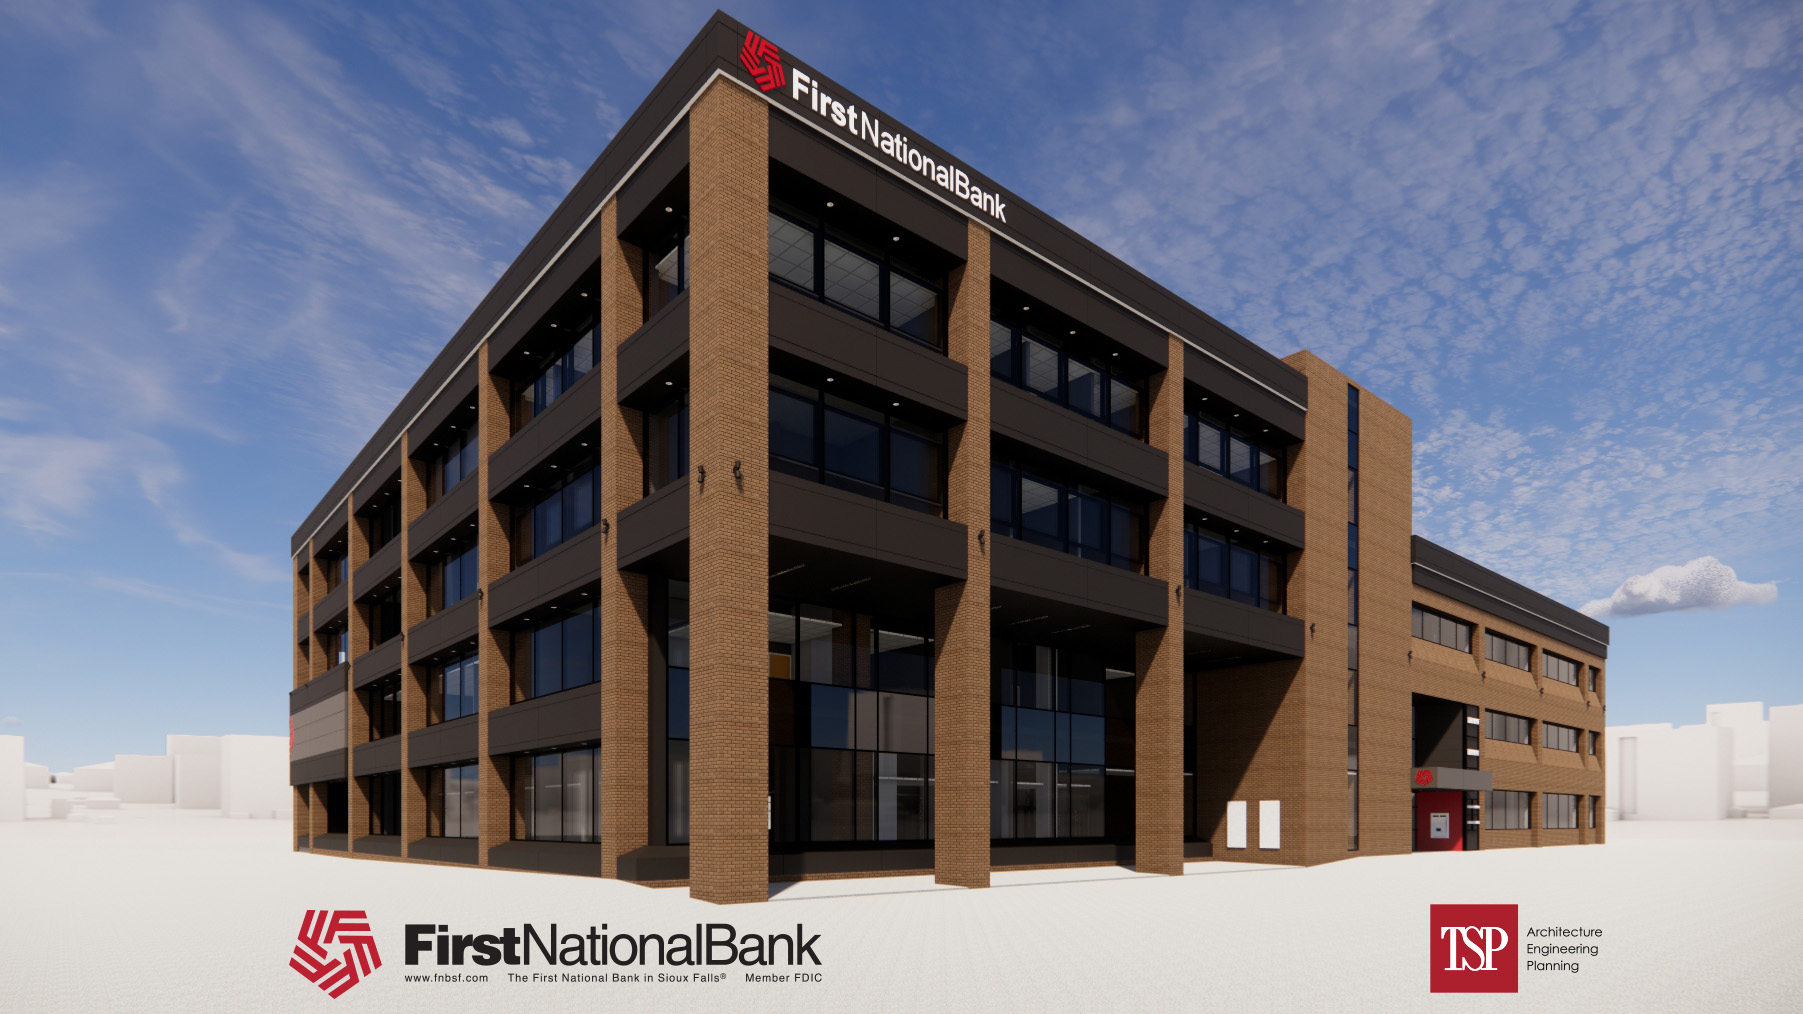 The First National Bank in Sioux Falls